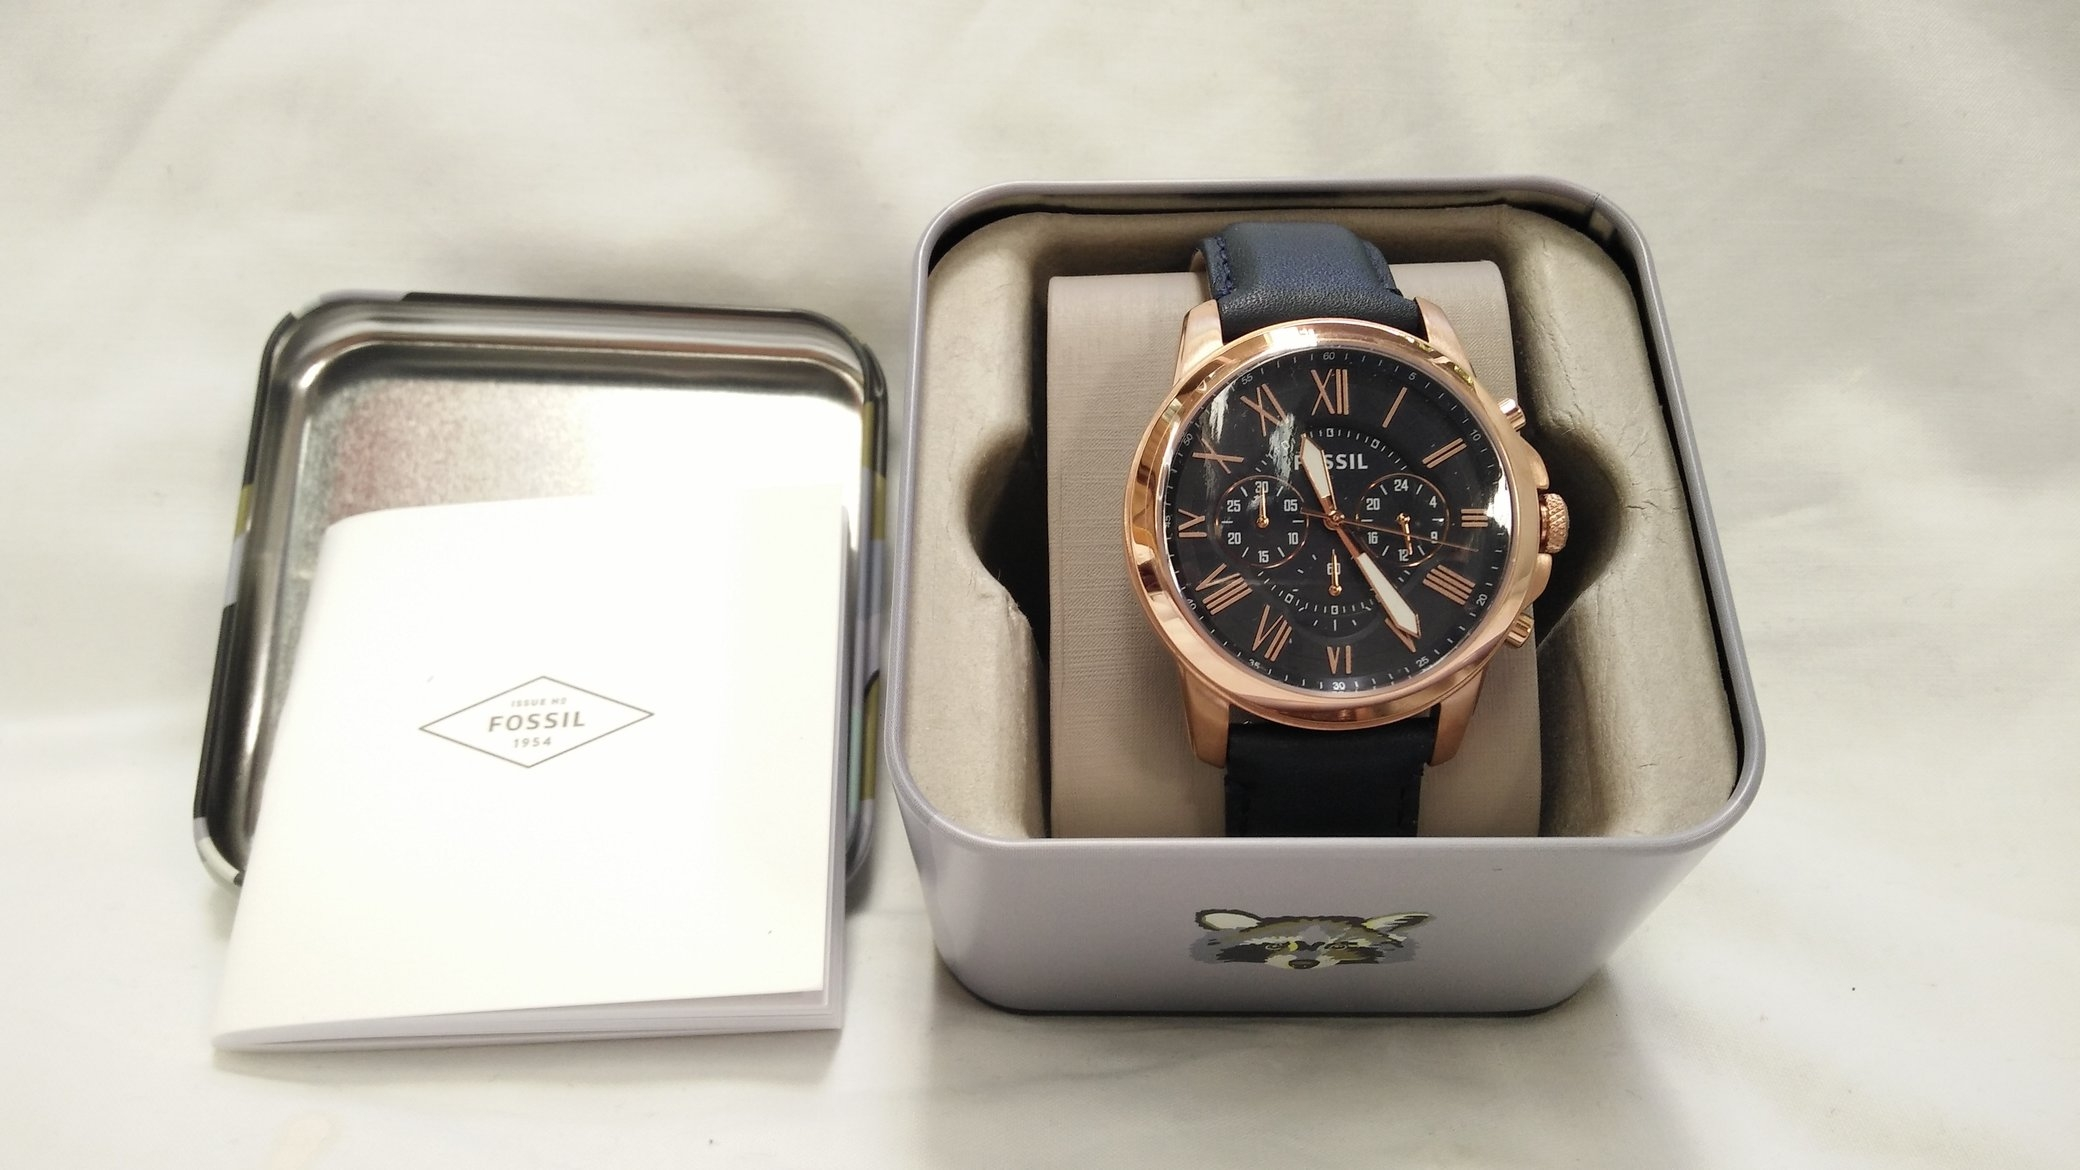 29b52e397 Quite a surprisingly solid and weighty watch, has some heft to it, so  you'll definitely notice it on your wrist. Great that it has luminous hour  and watch ...